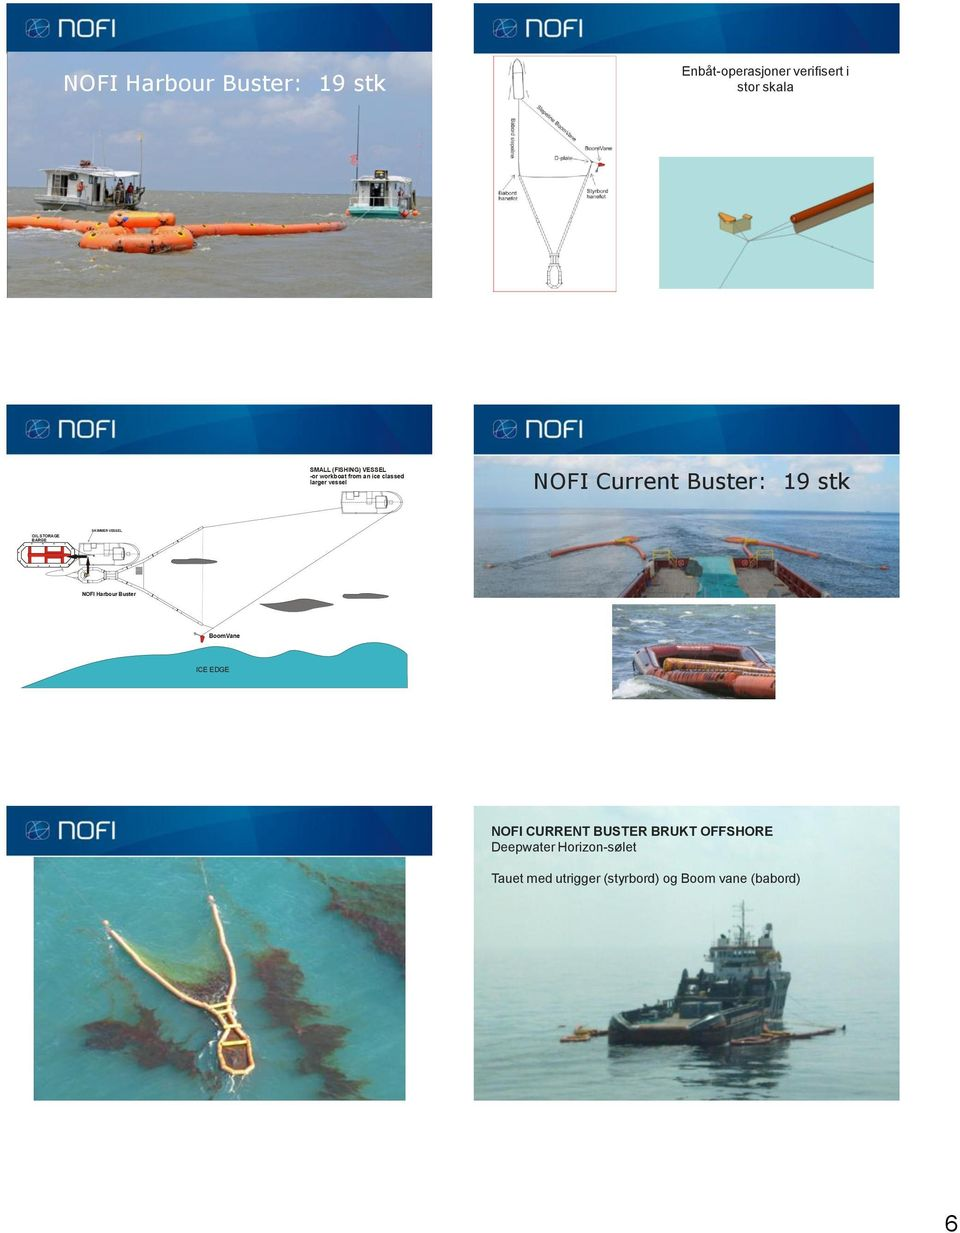 STORAGE BARGE SKIMMER VESSEL NOFI Harbour Buster BoomVane ICE EDGE NOFI CURRENT BUSTER